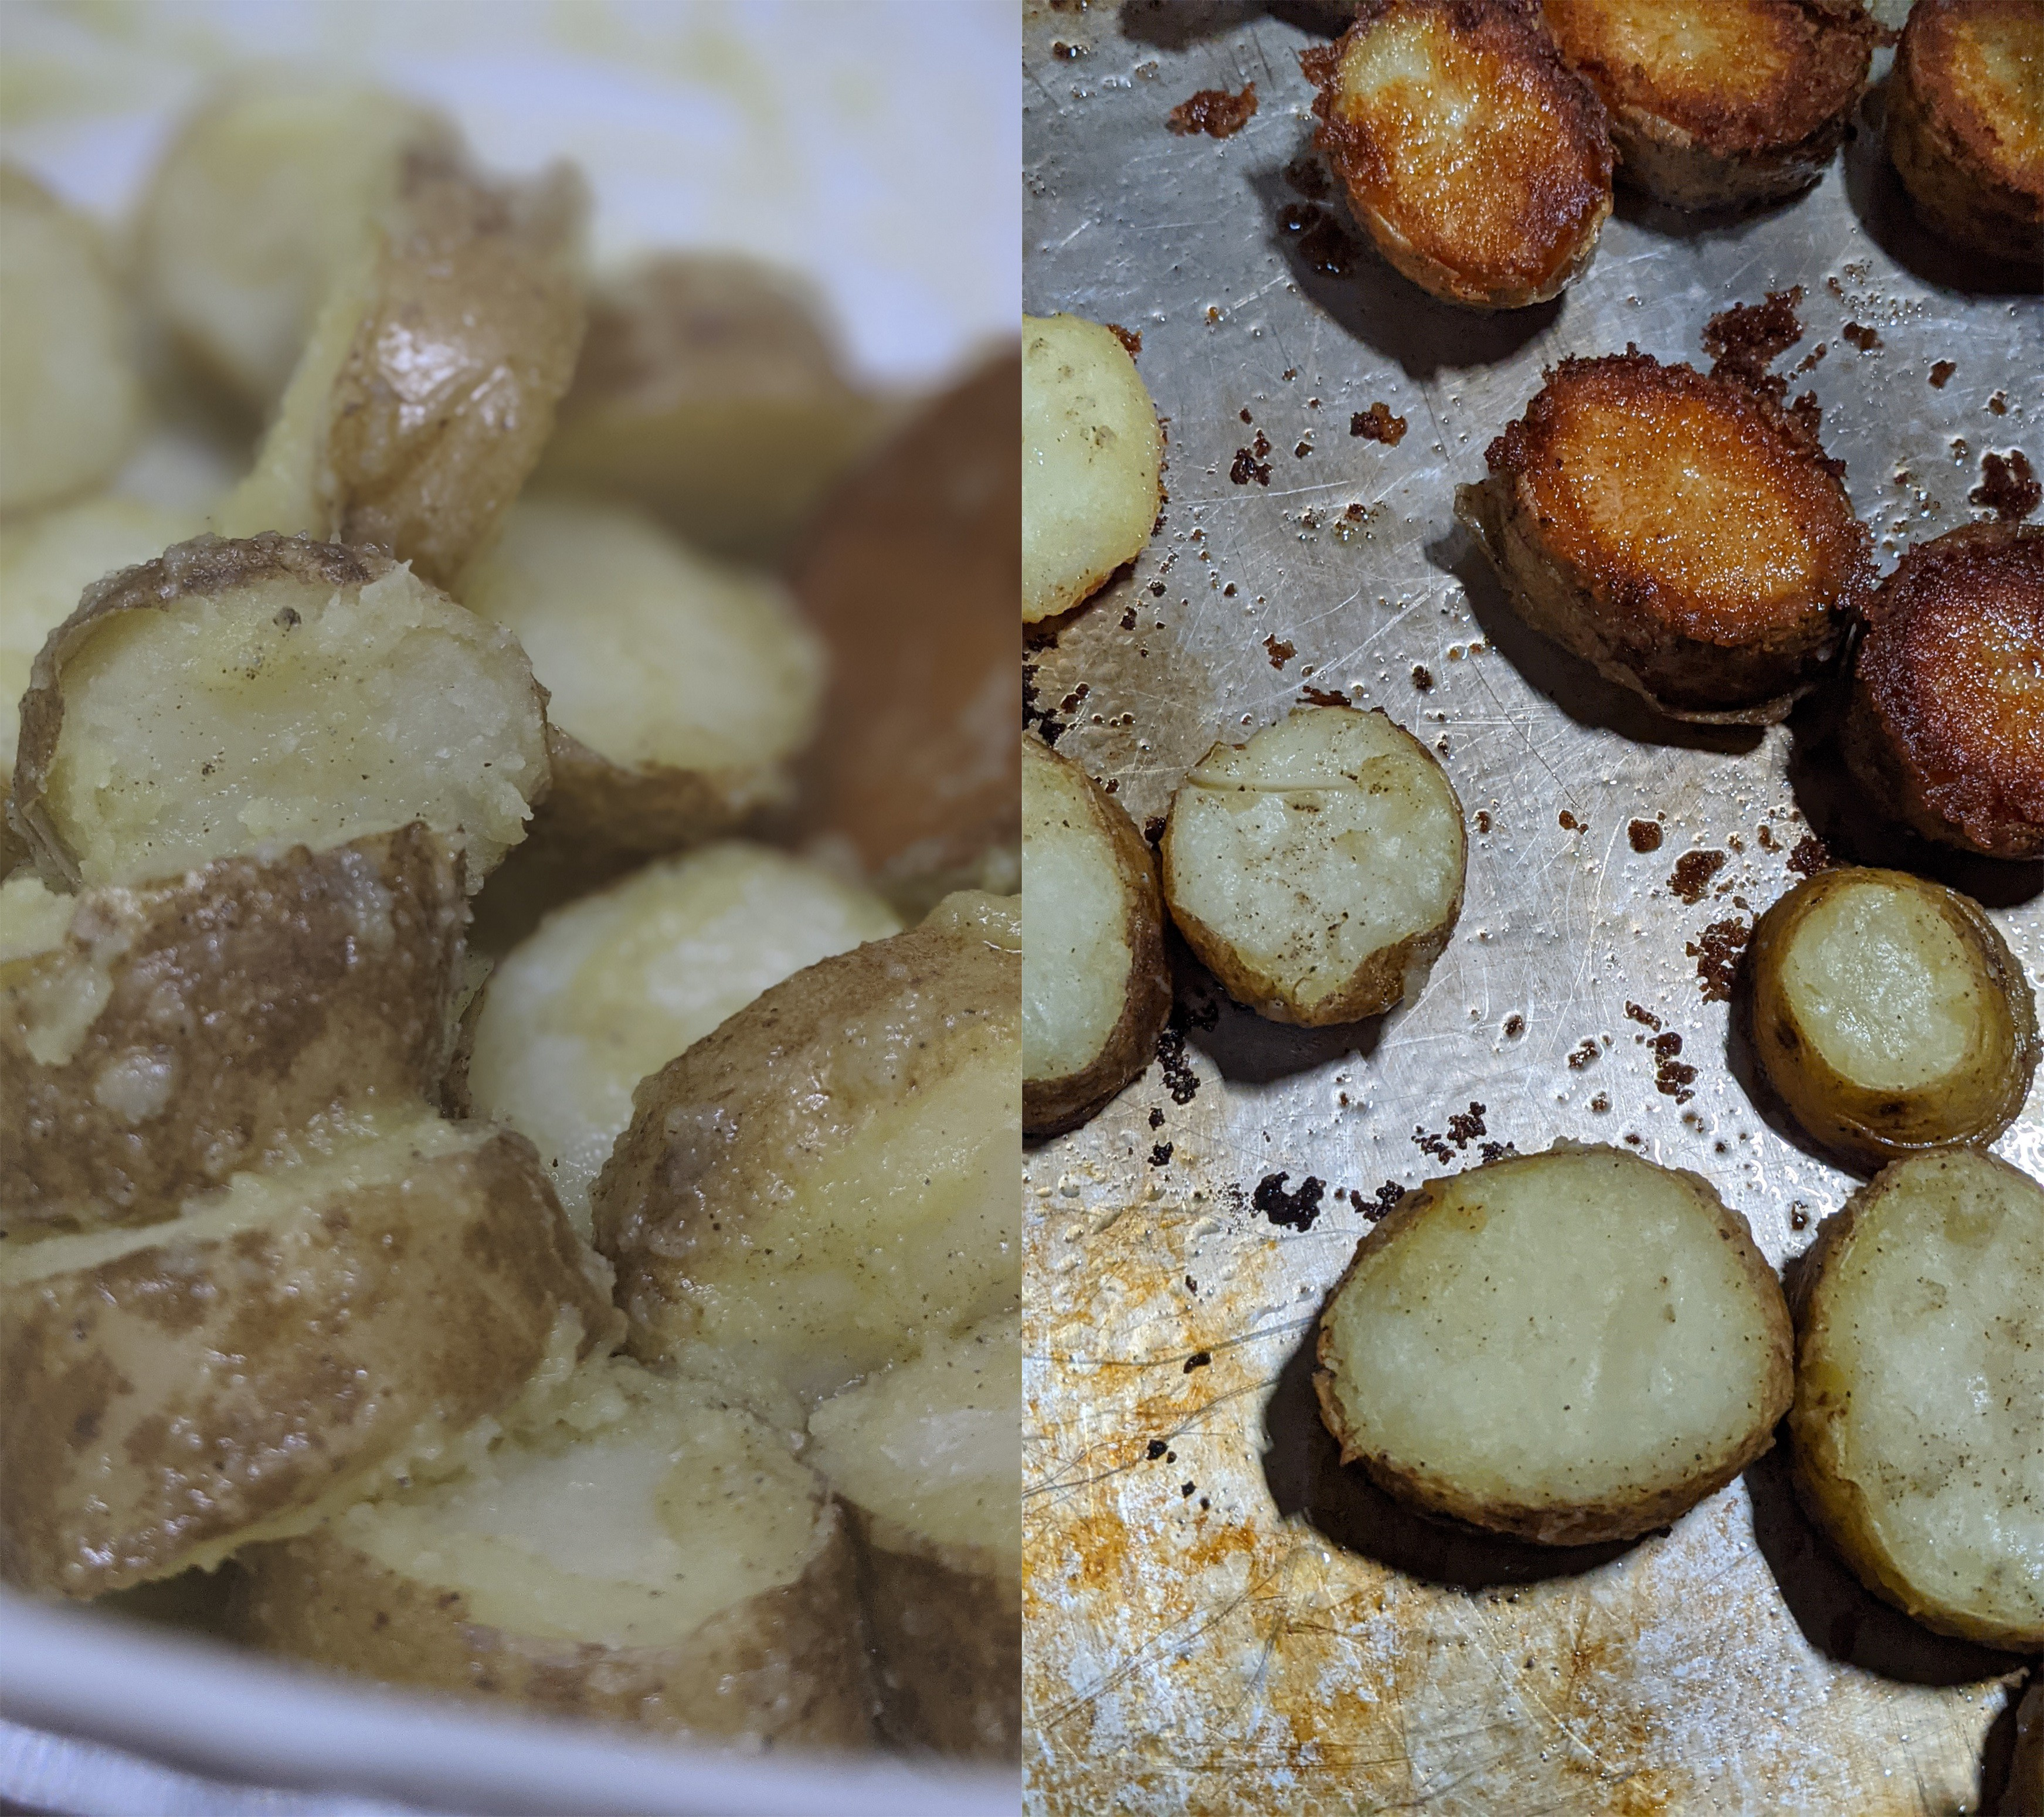 Potatoes tossed with fat and potatoes halfway through frying